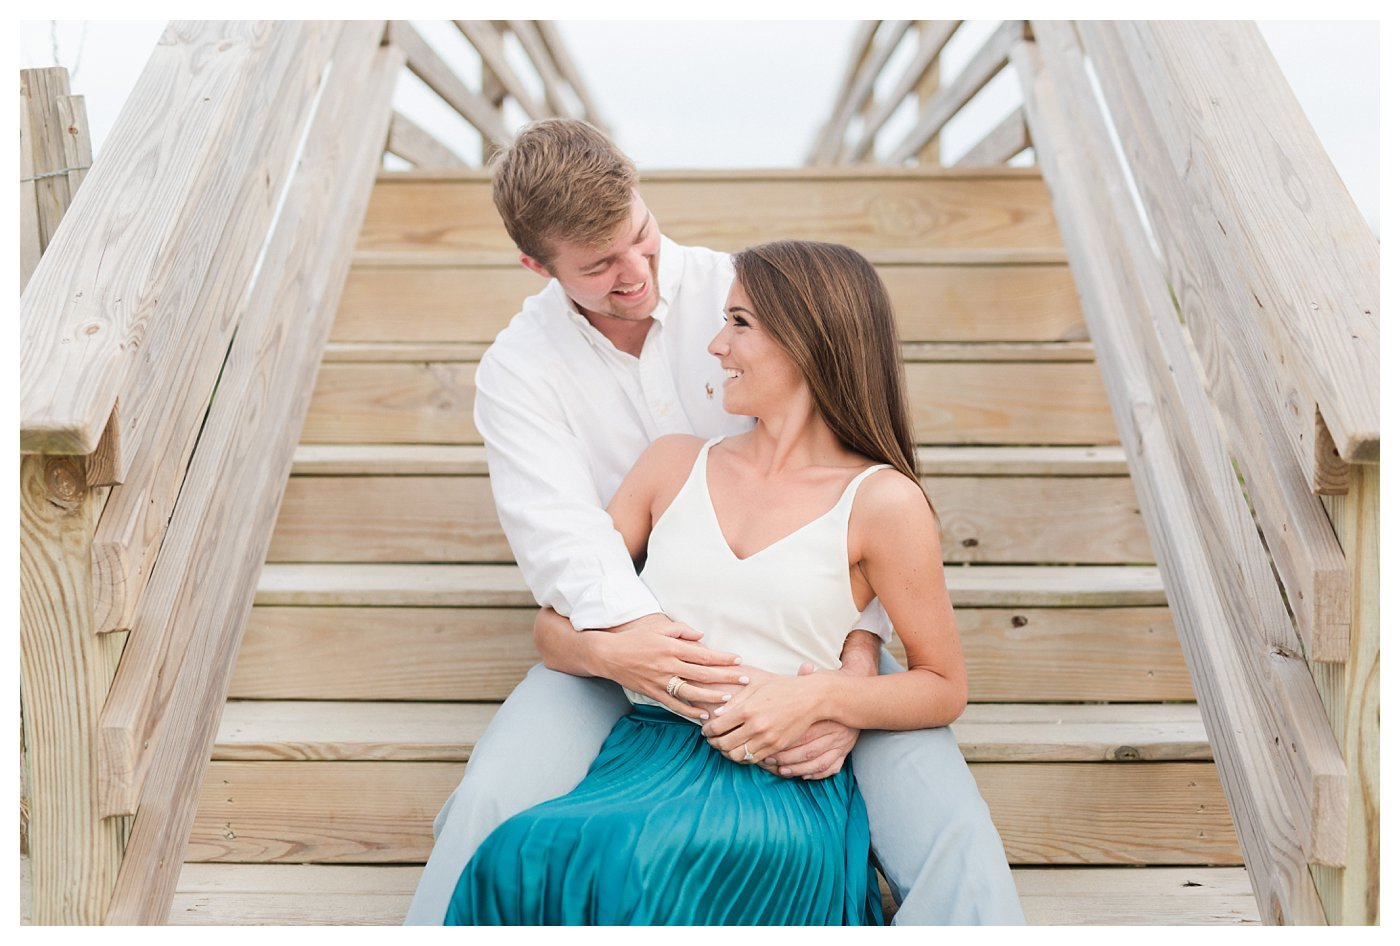 Ocean_Isle_NC_Beach_Engagement_Session_Turqoise_White_Candlelit_0006.jpg